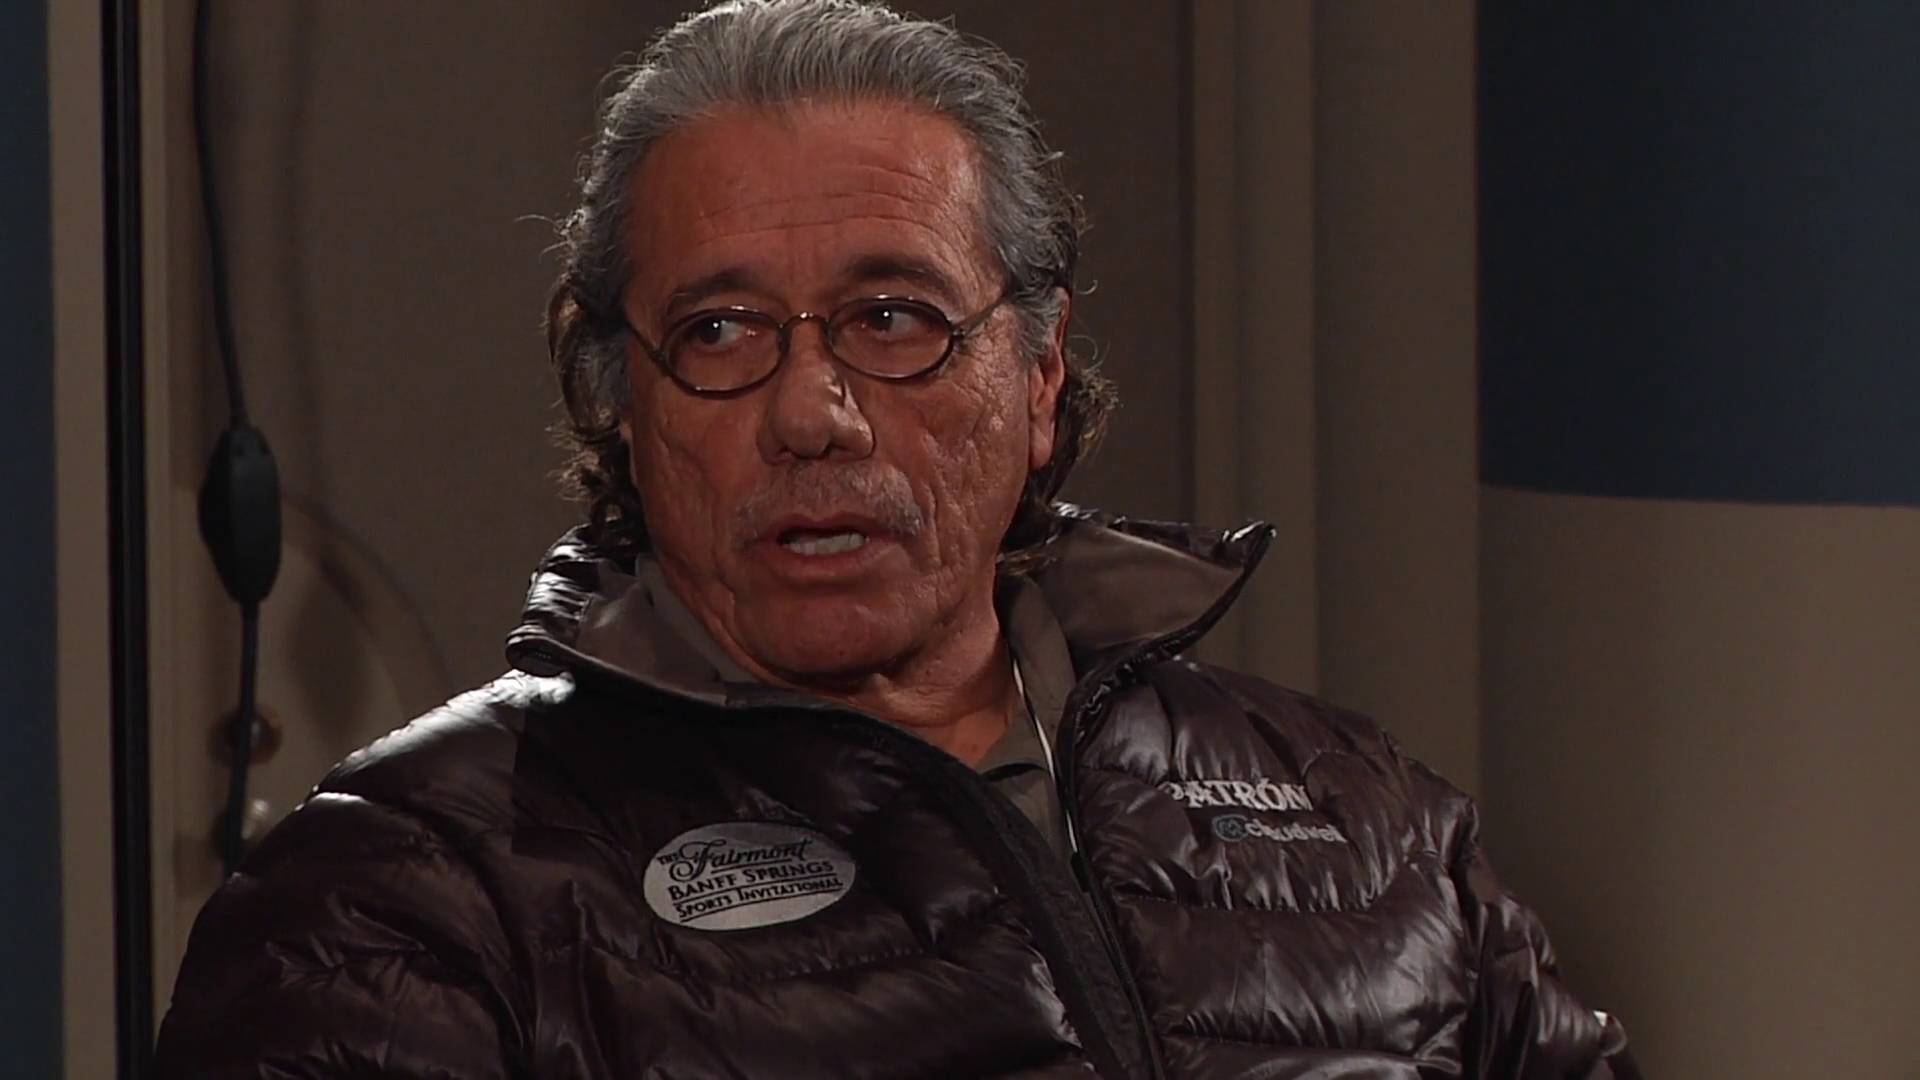 Discussion with Actor Edward James Olmos at New York Film Academy